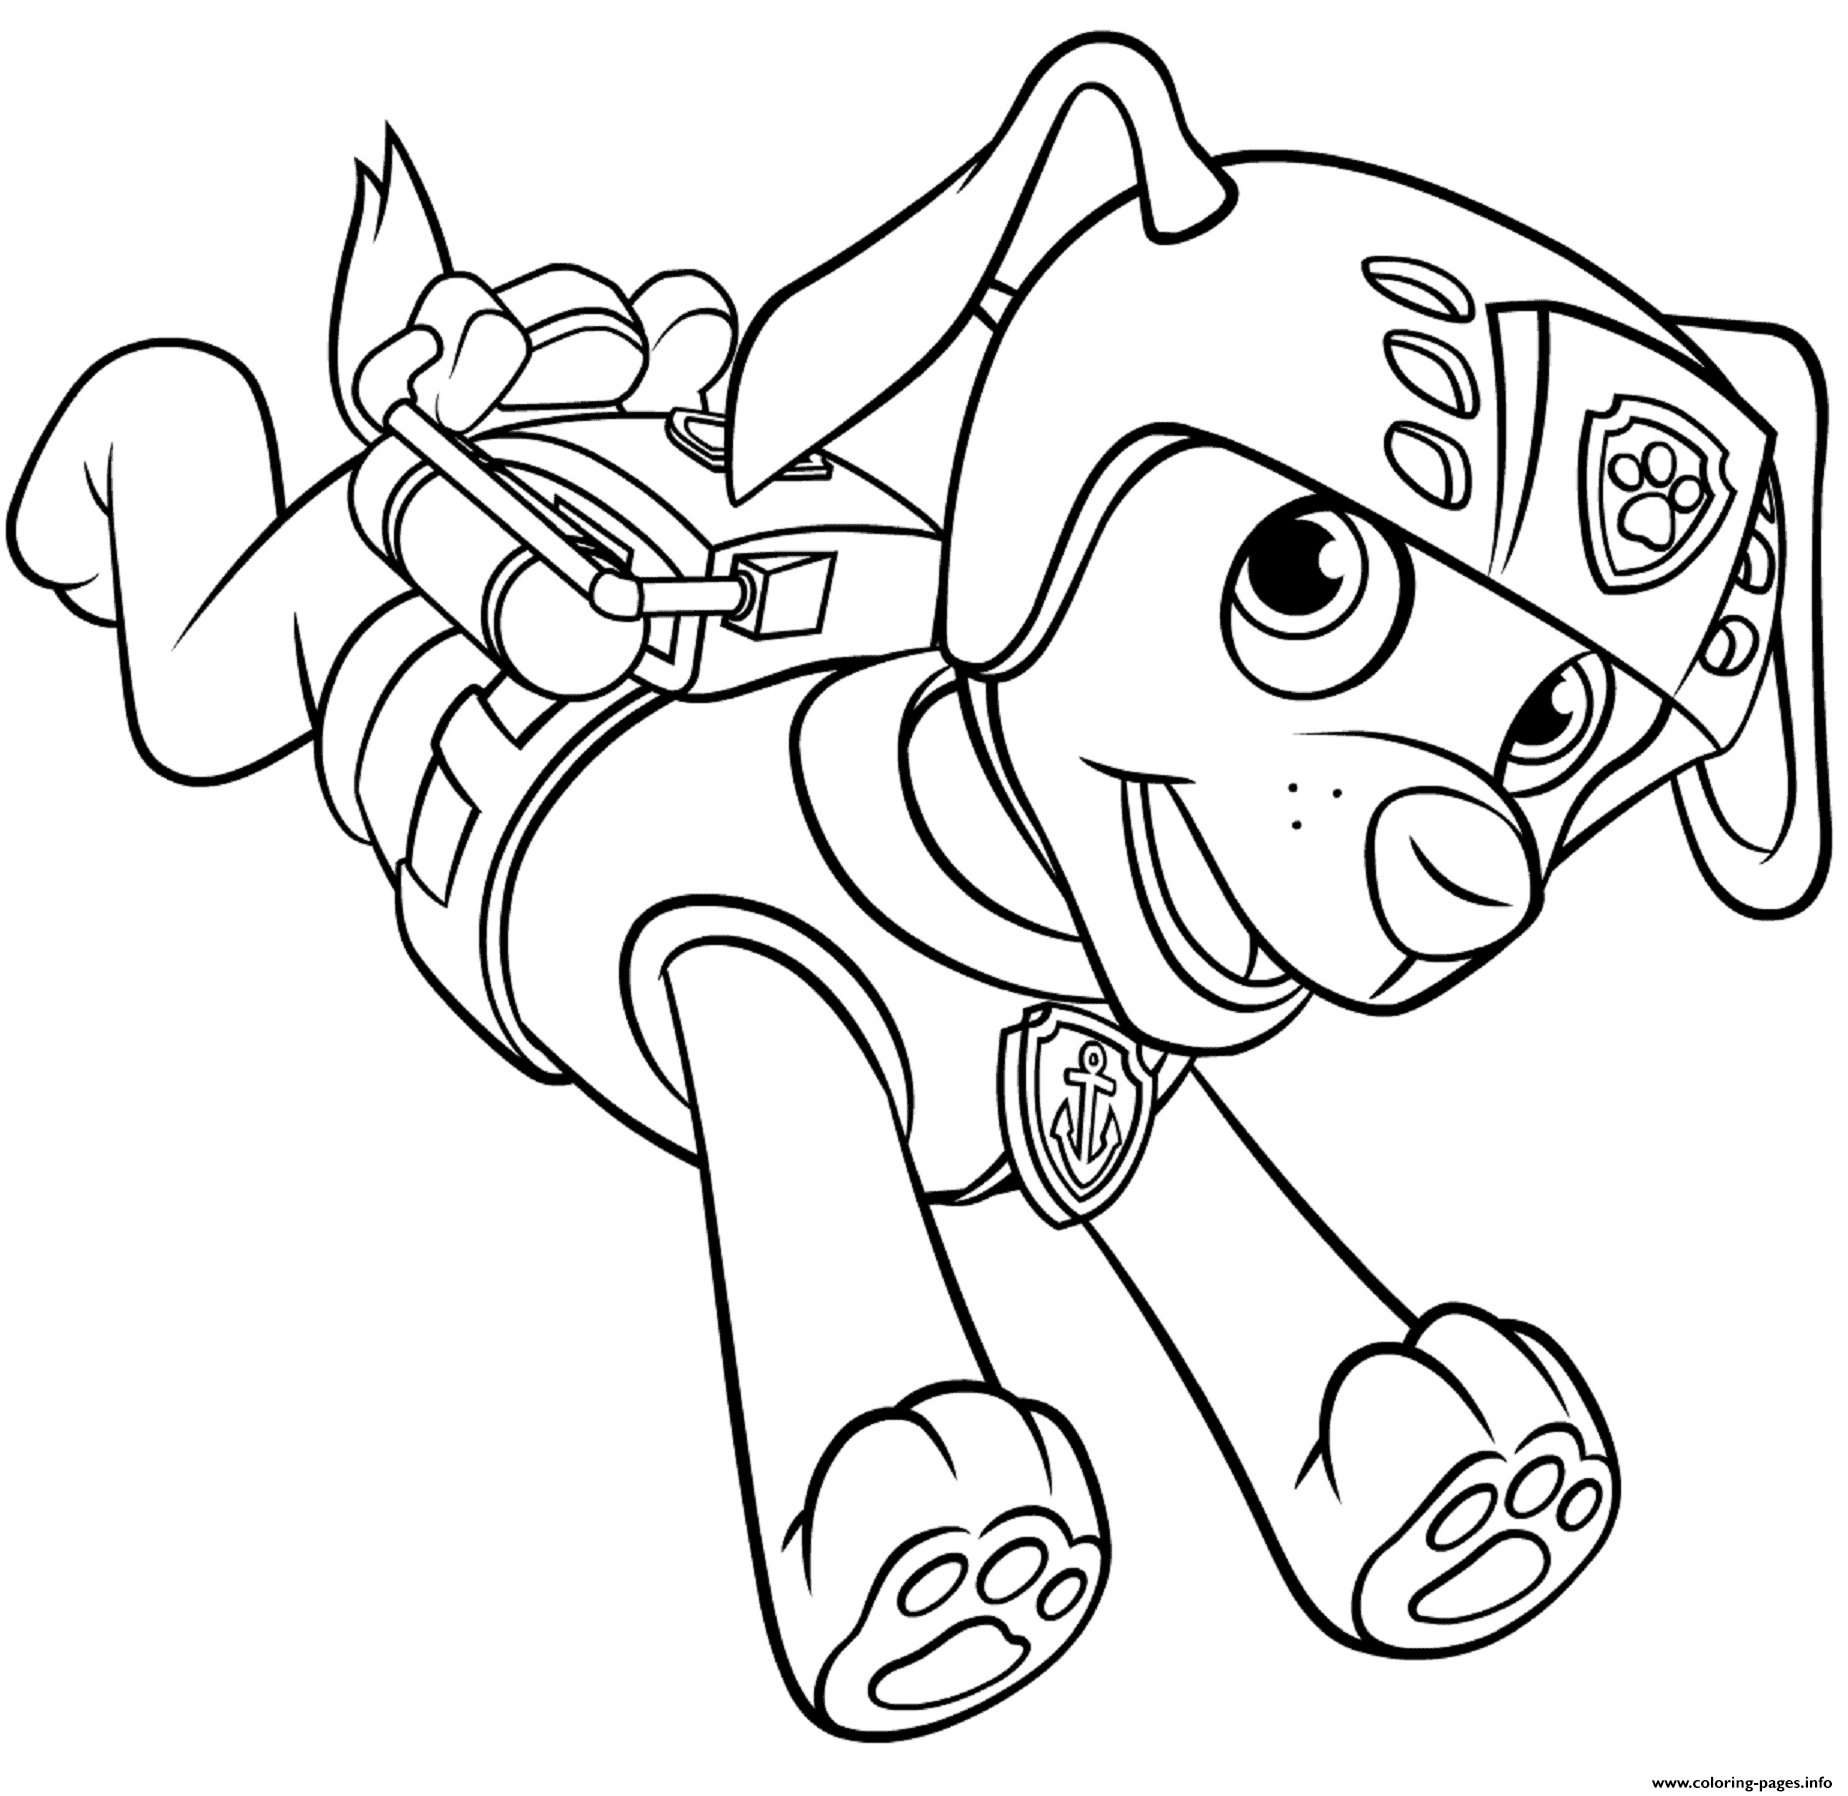 - Print Zuma With Scuba Gear Backpack Paw Patrol Coloring Pages